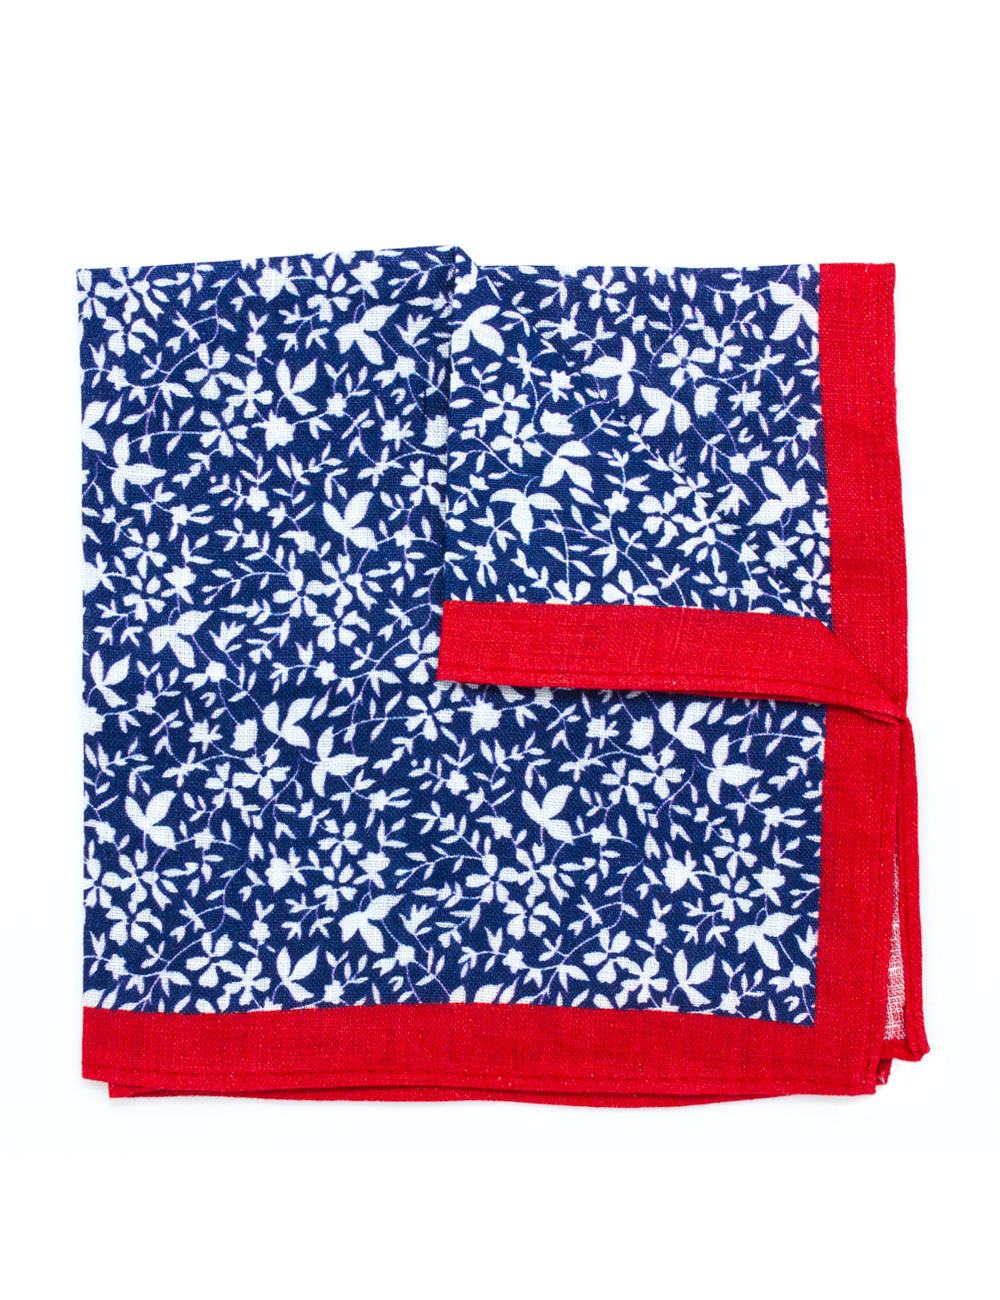 b1eb136bf5e42 Red with Navy Floral Print Linen Pocket Square PSQ46.8 - The Shirt Bar